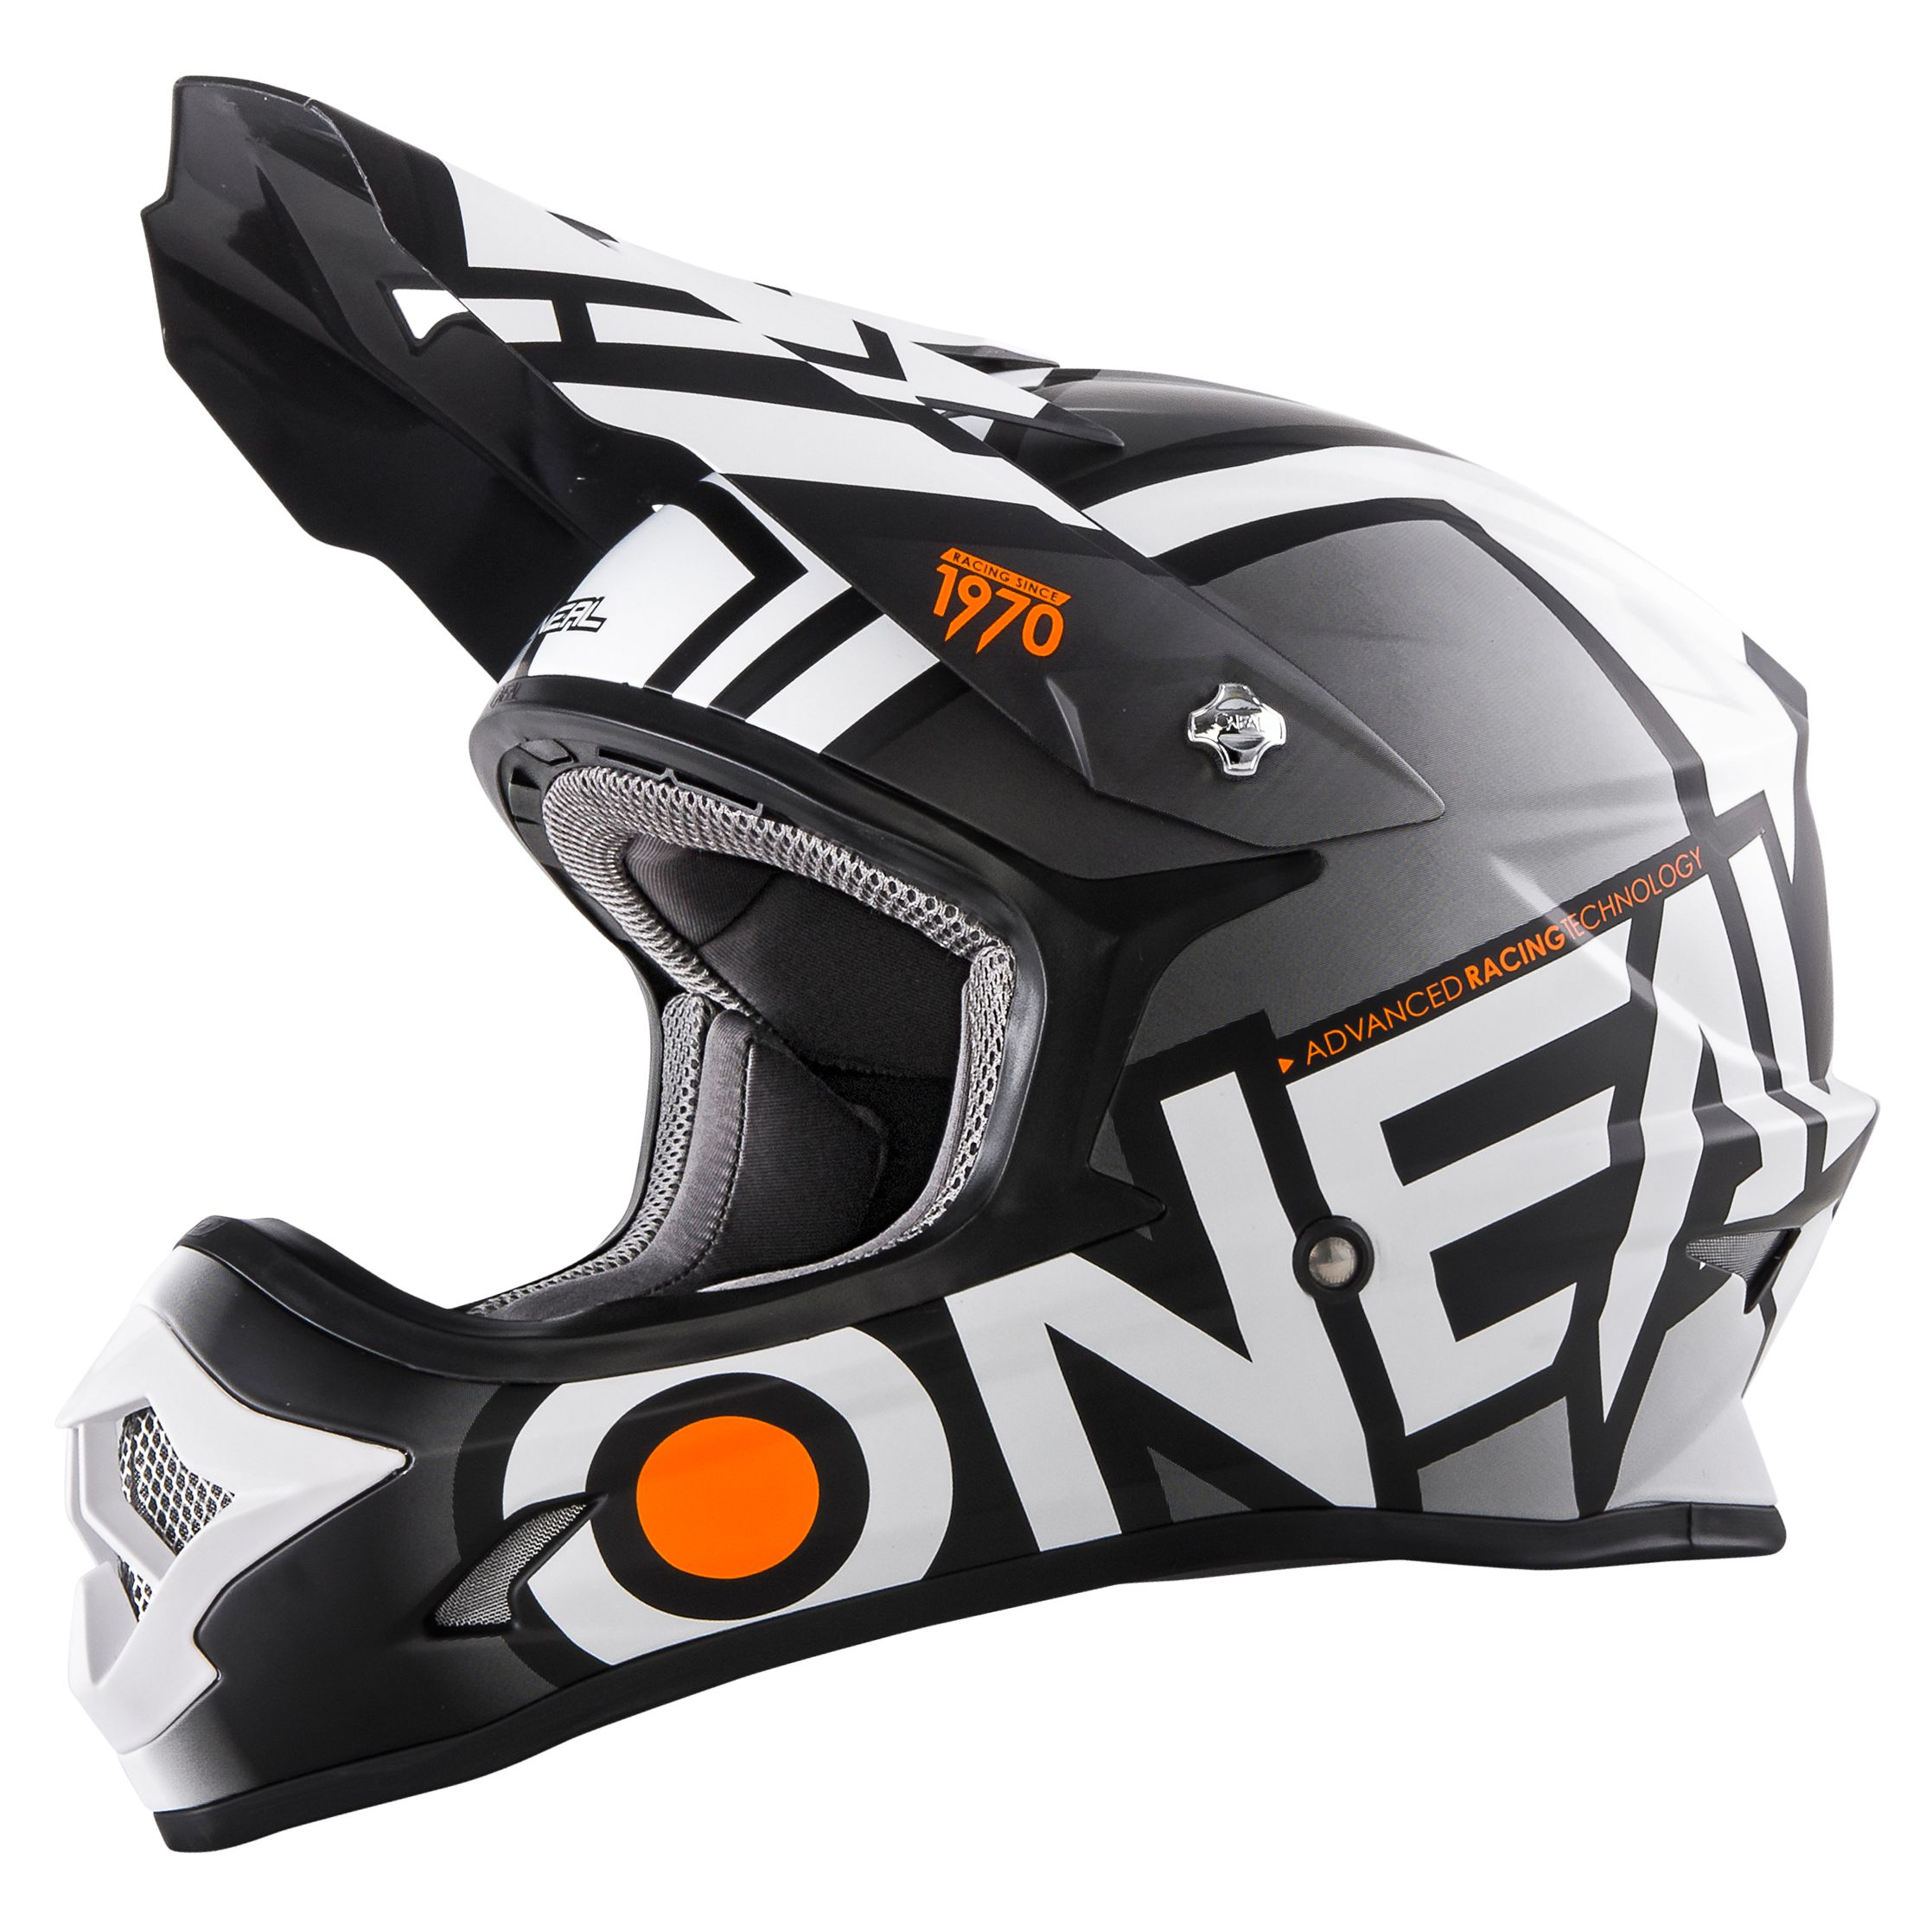 Casque Cross O'neal Series 3 Radium - Noir Blanc (mat) -